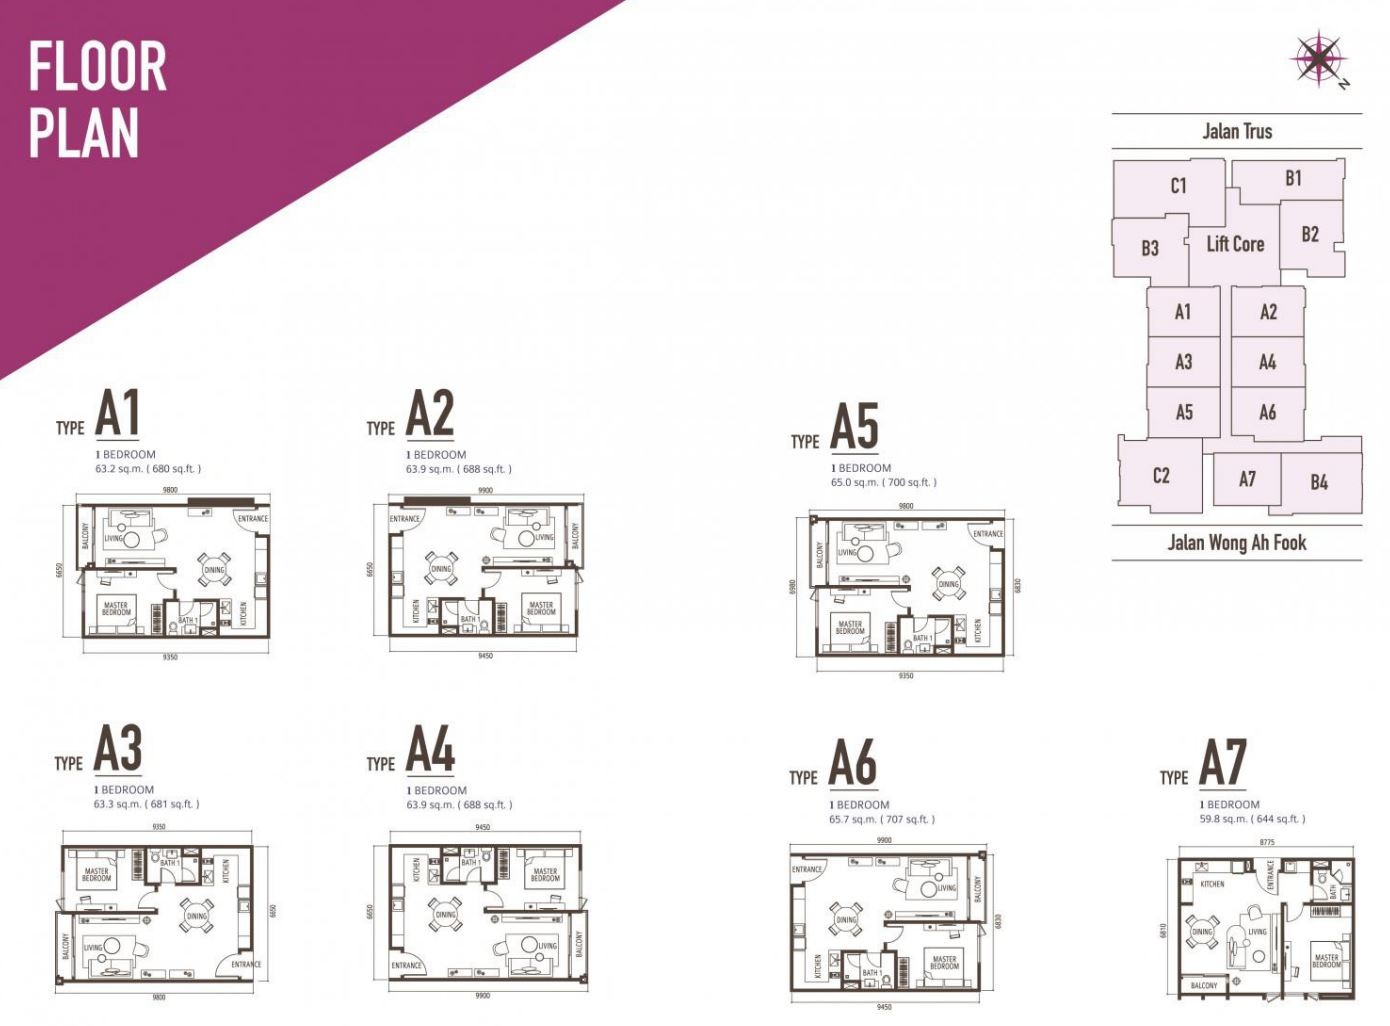 Suasana FloorPlan - Type A